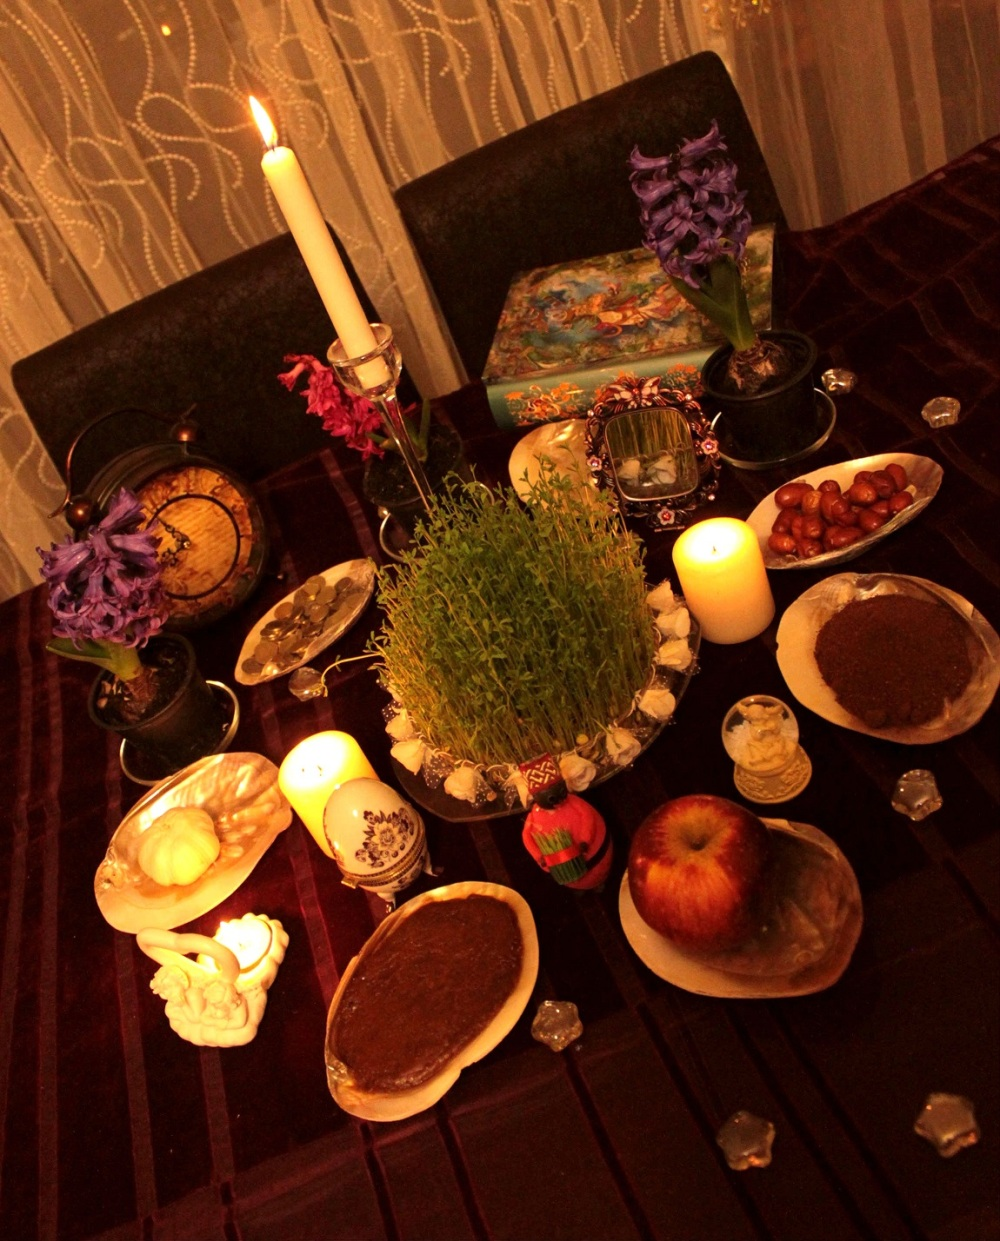 Our Nowruz table(Iranian new year) :D